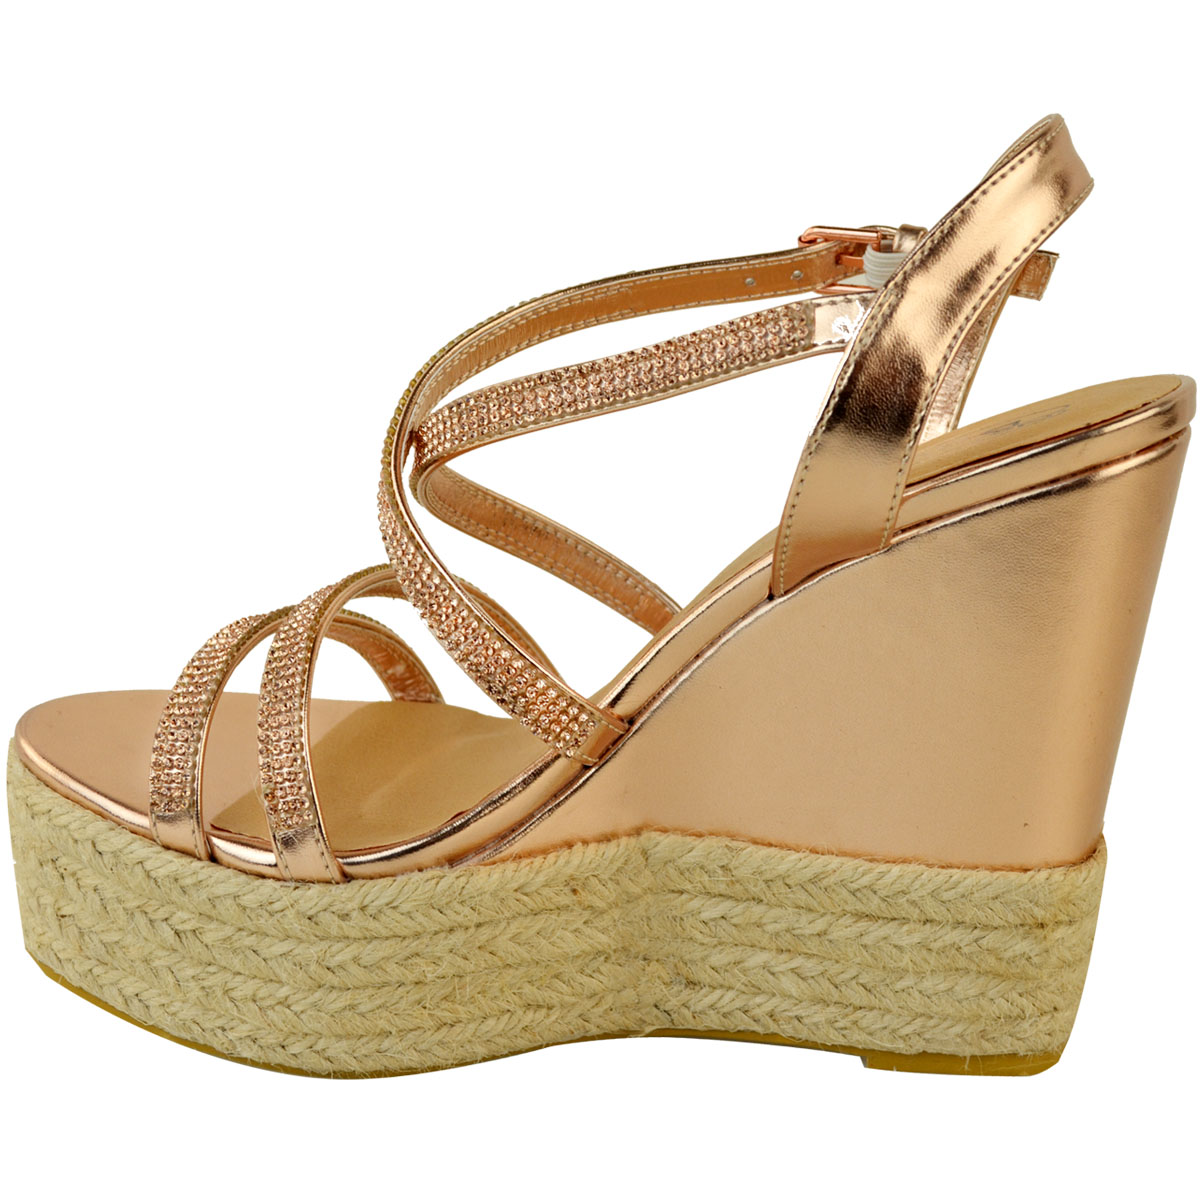 Womens-Ladies-Strappy-Diamante-Wedge-High-Heels-Sandals-Platforms-Shoes-Size-UK thumbnail 15